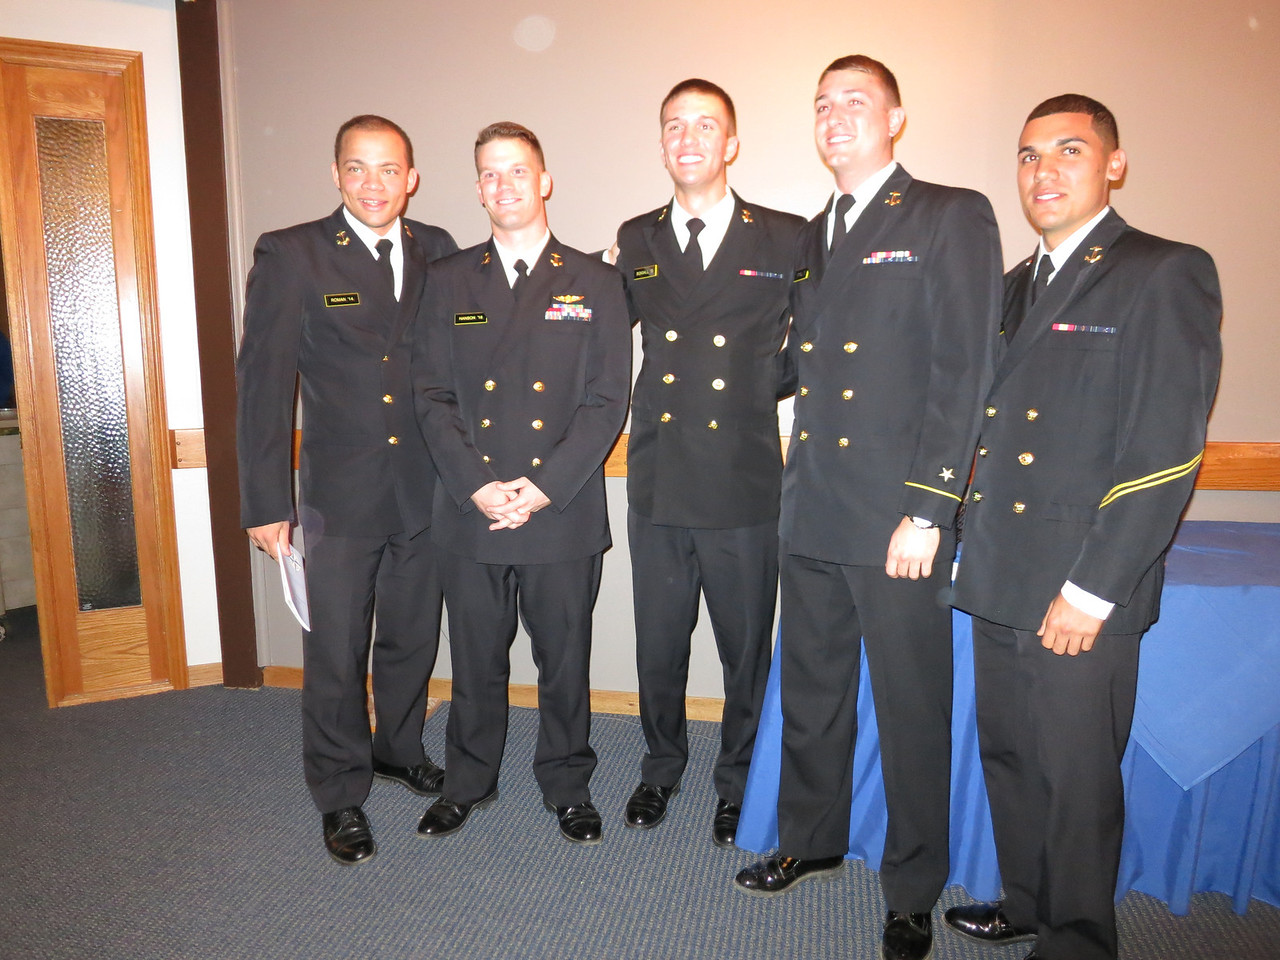 Andrew second from right, with his boyfriend, Nick, to his right. [Sorry, there was no group shot of the cadets.]